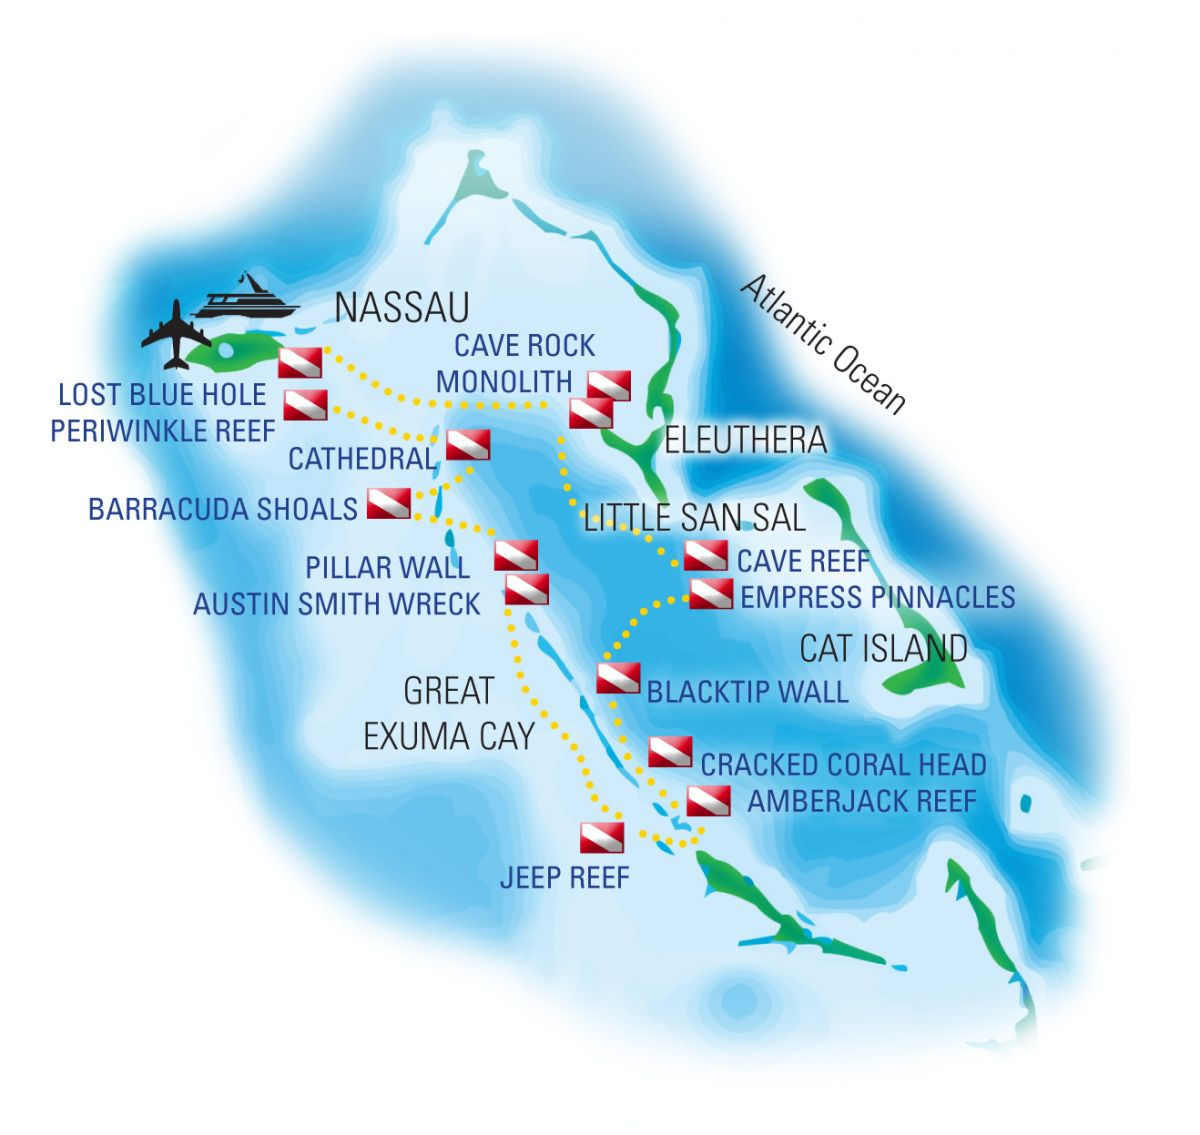 Bahamas Dive Sites Map